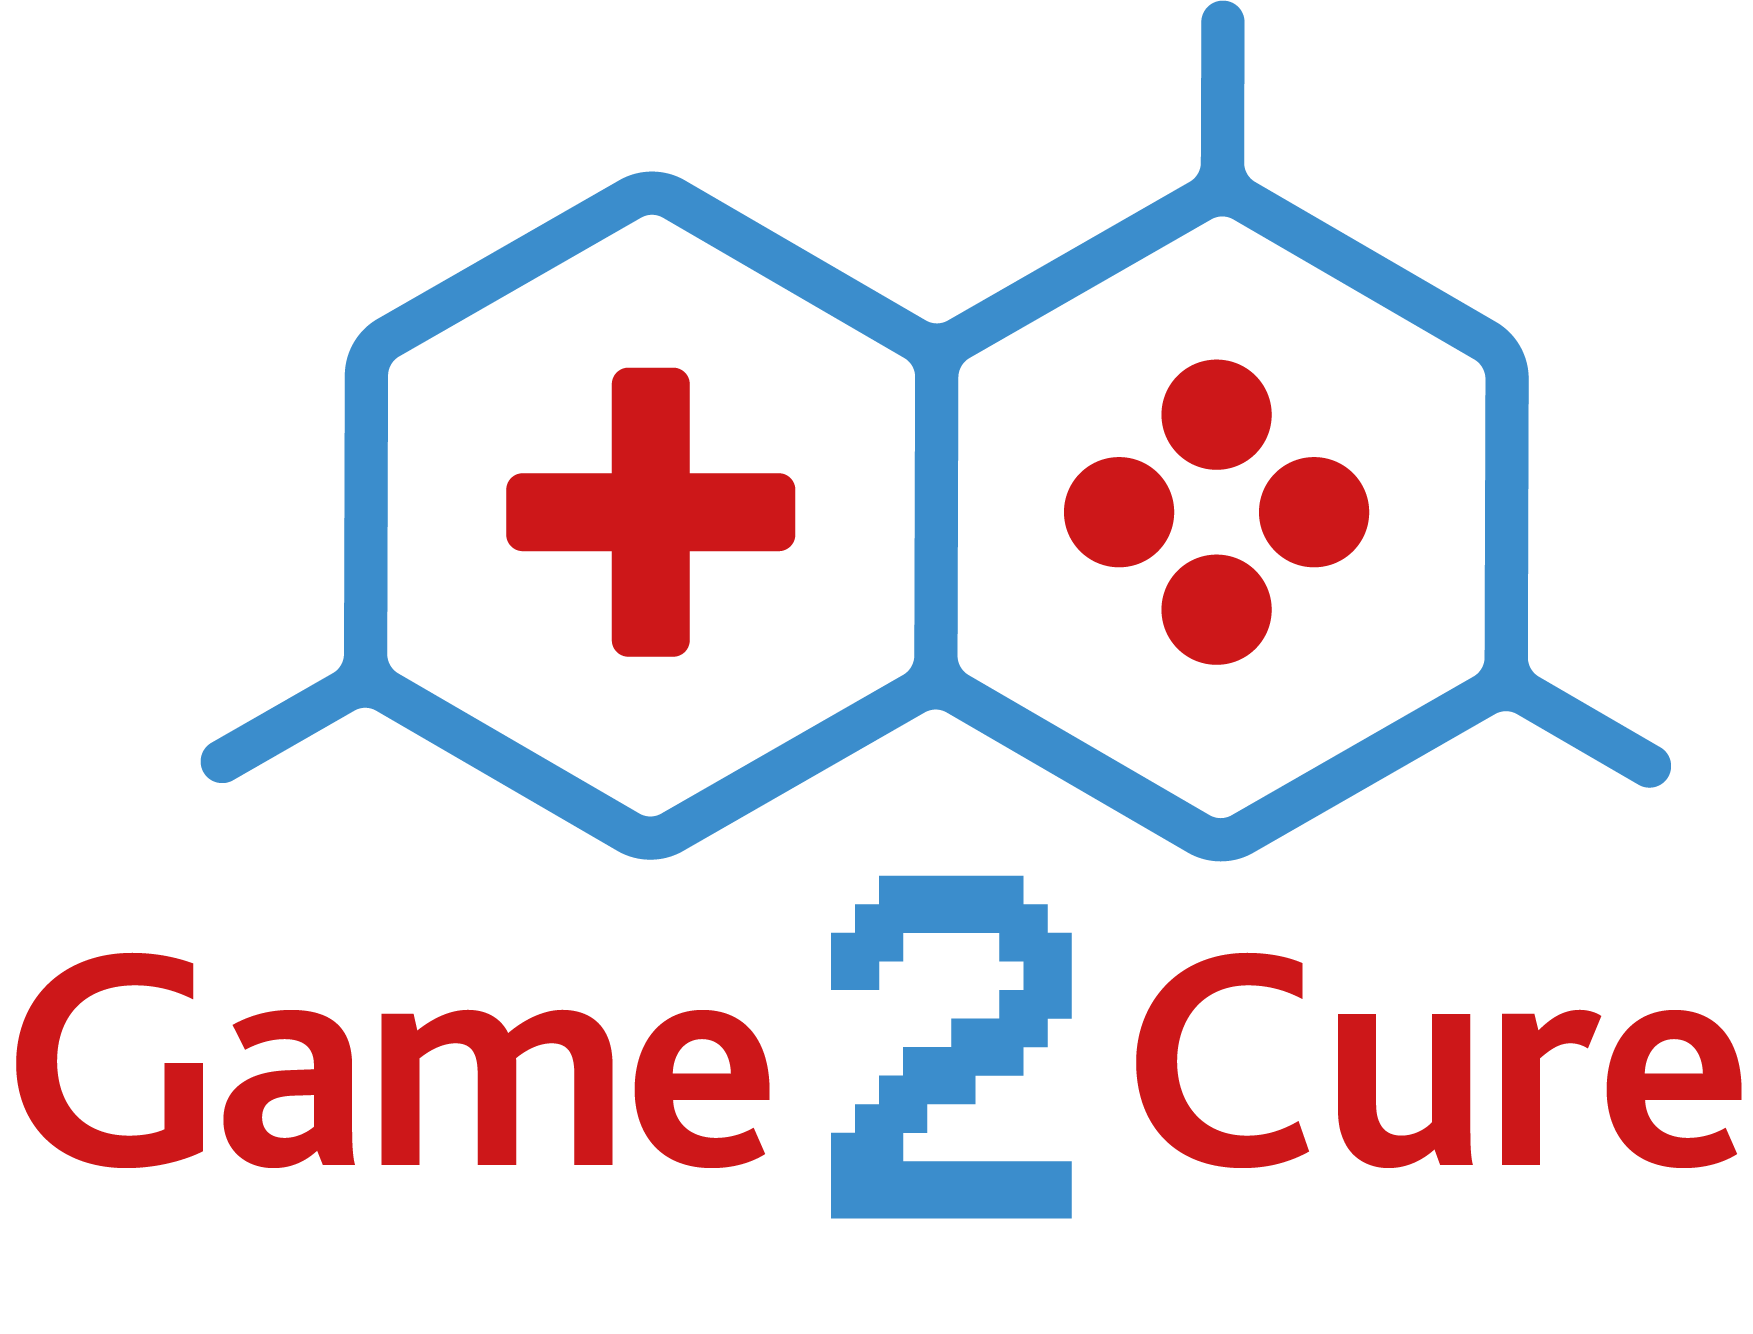 Game 2 Cure logo